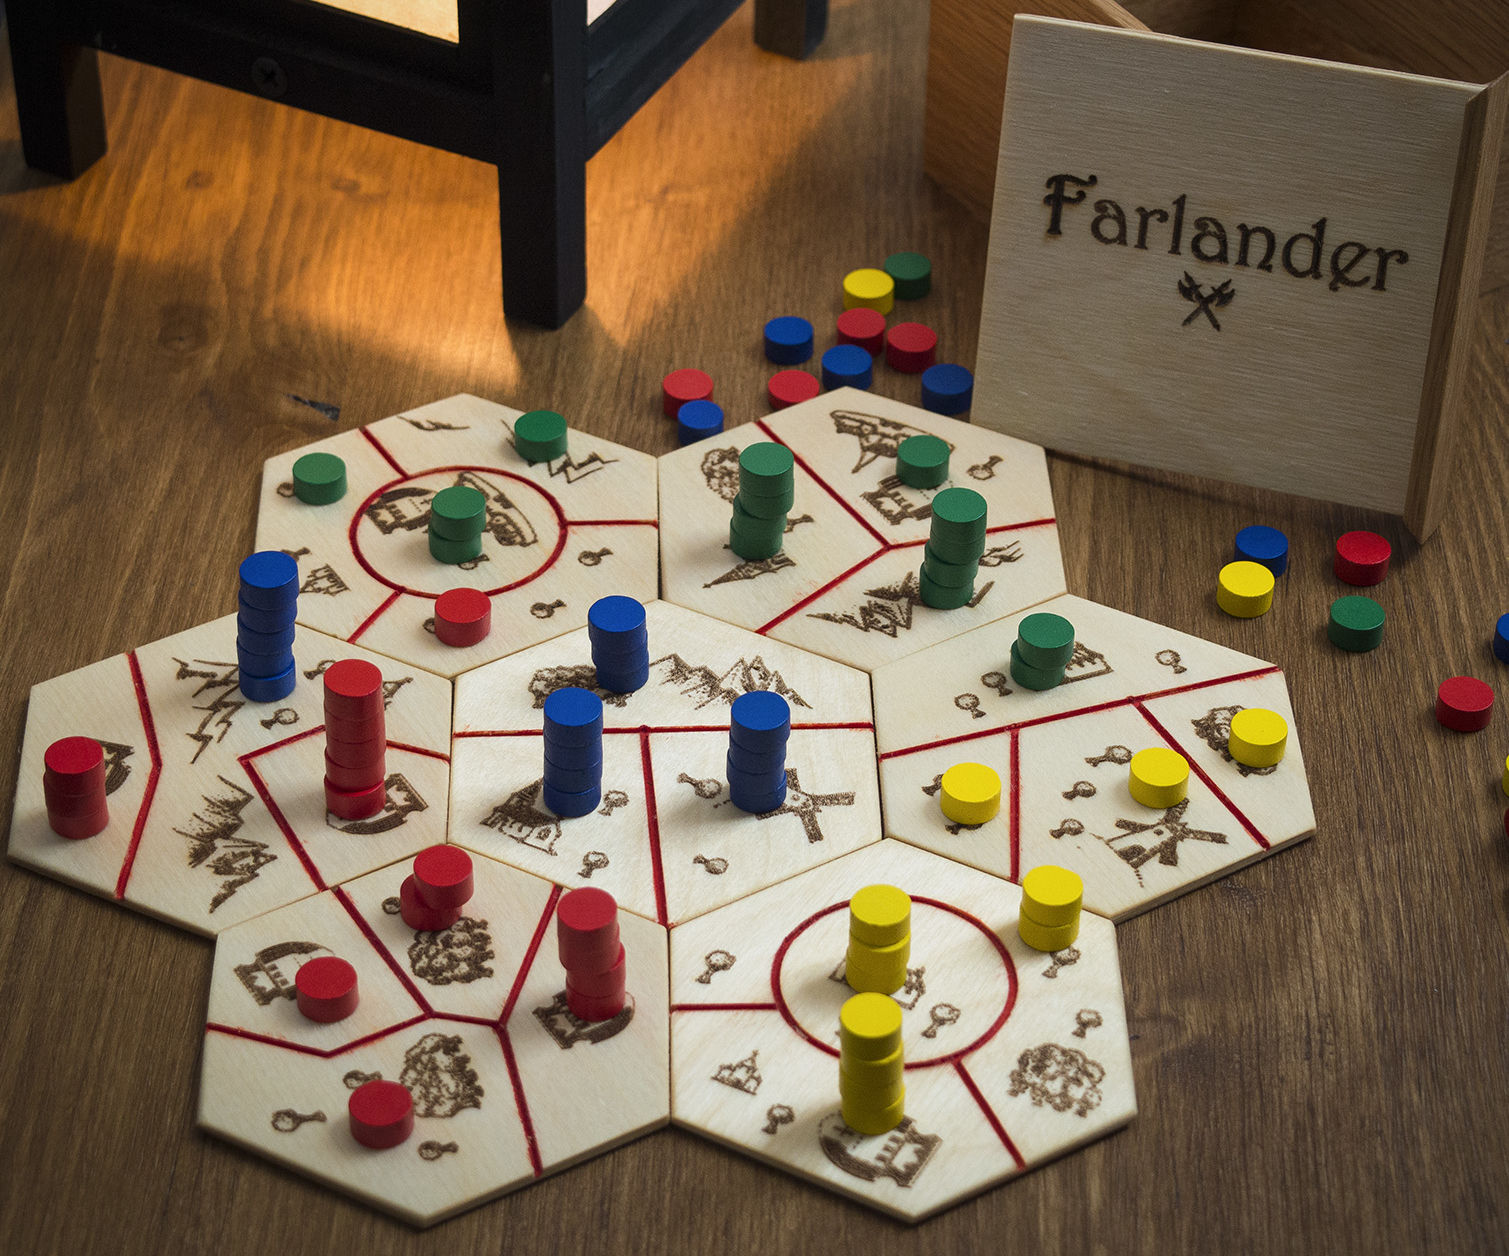 Diy Board Game Farlander 6 Steps With Pictures Instructables